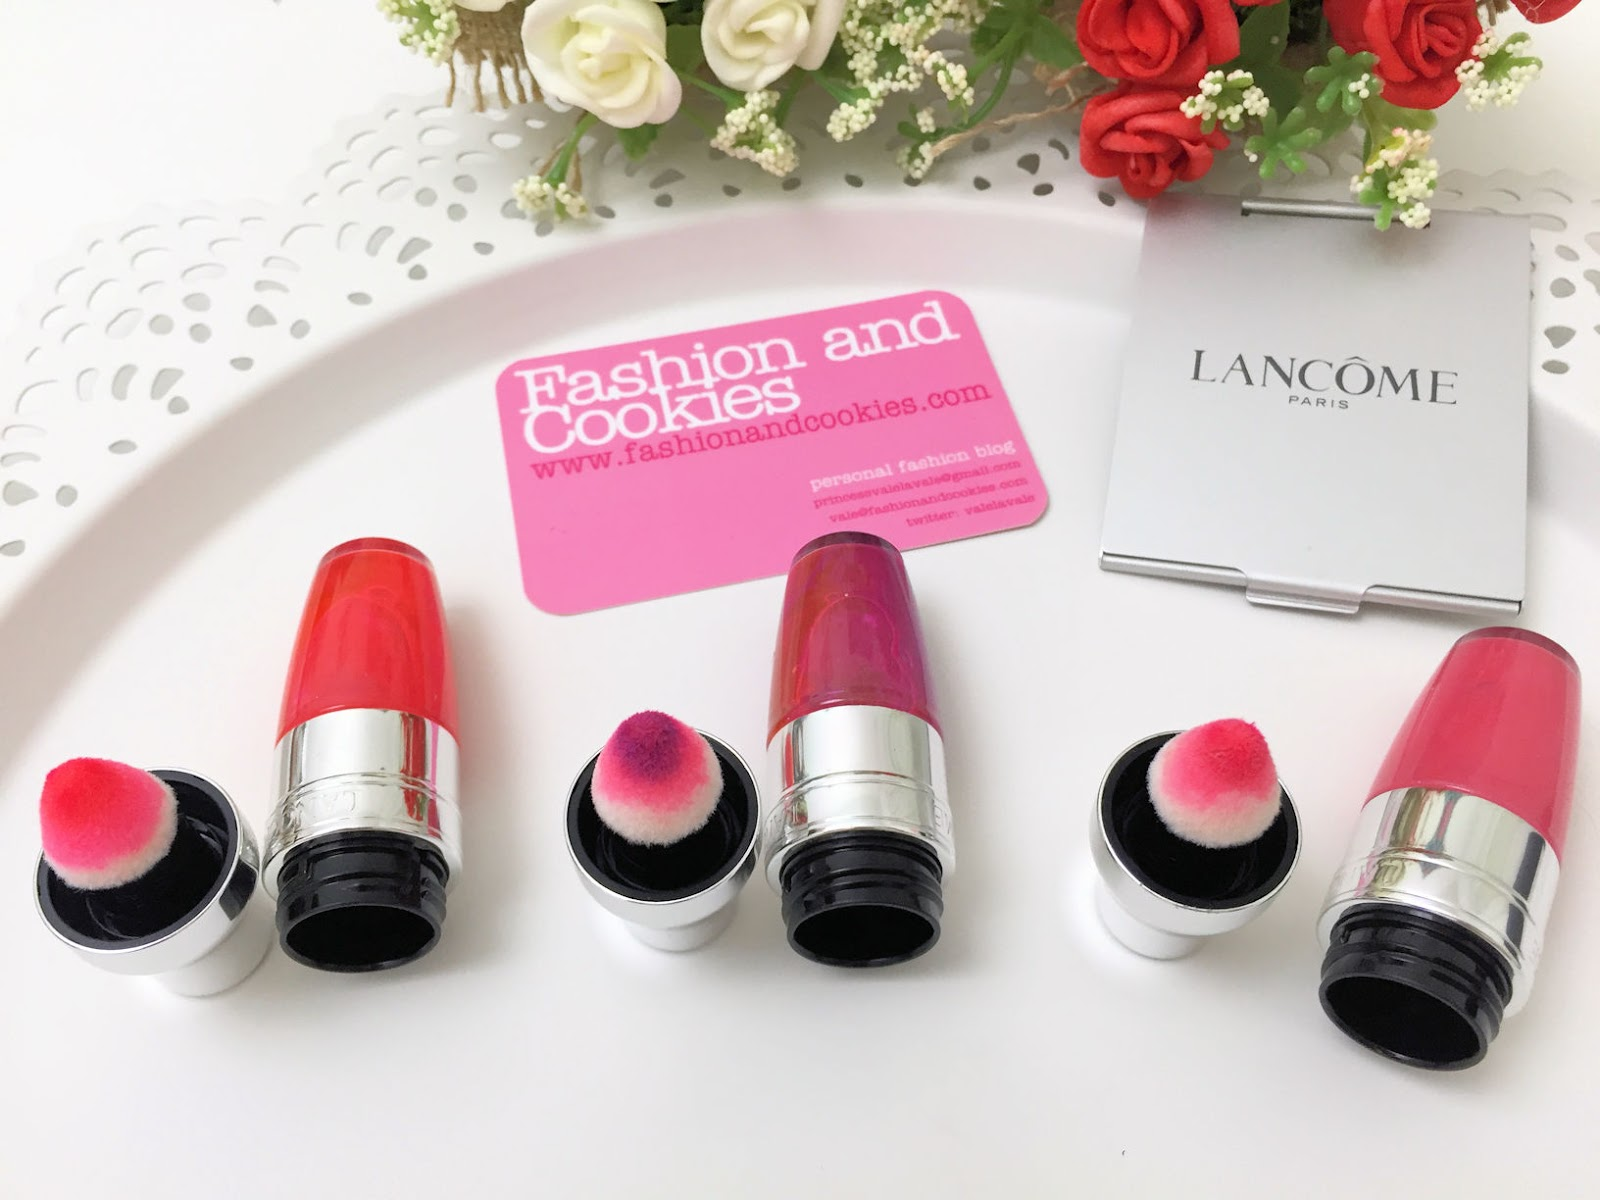 Lancome Juicy Shakers lip oils review on Fashion and Cookies beauty blog, beauty blogger